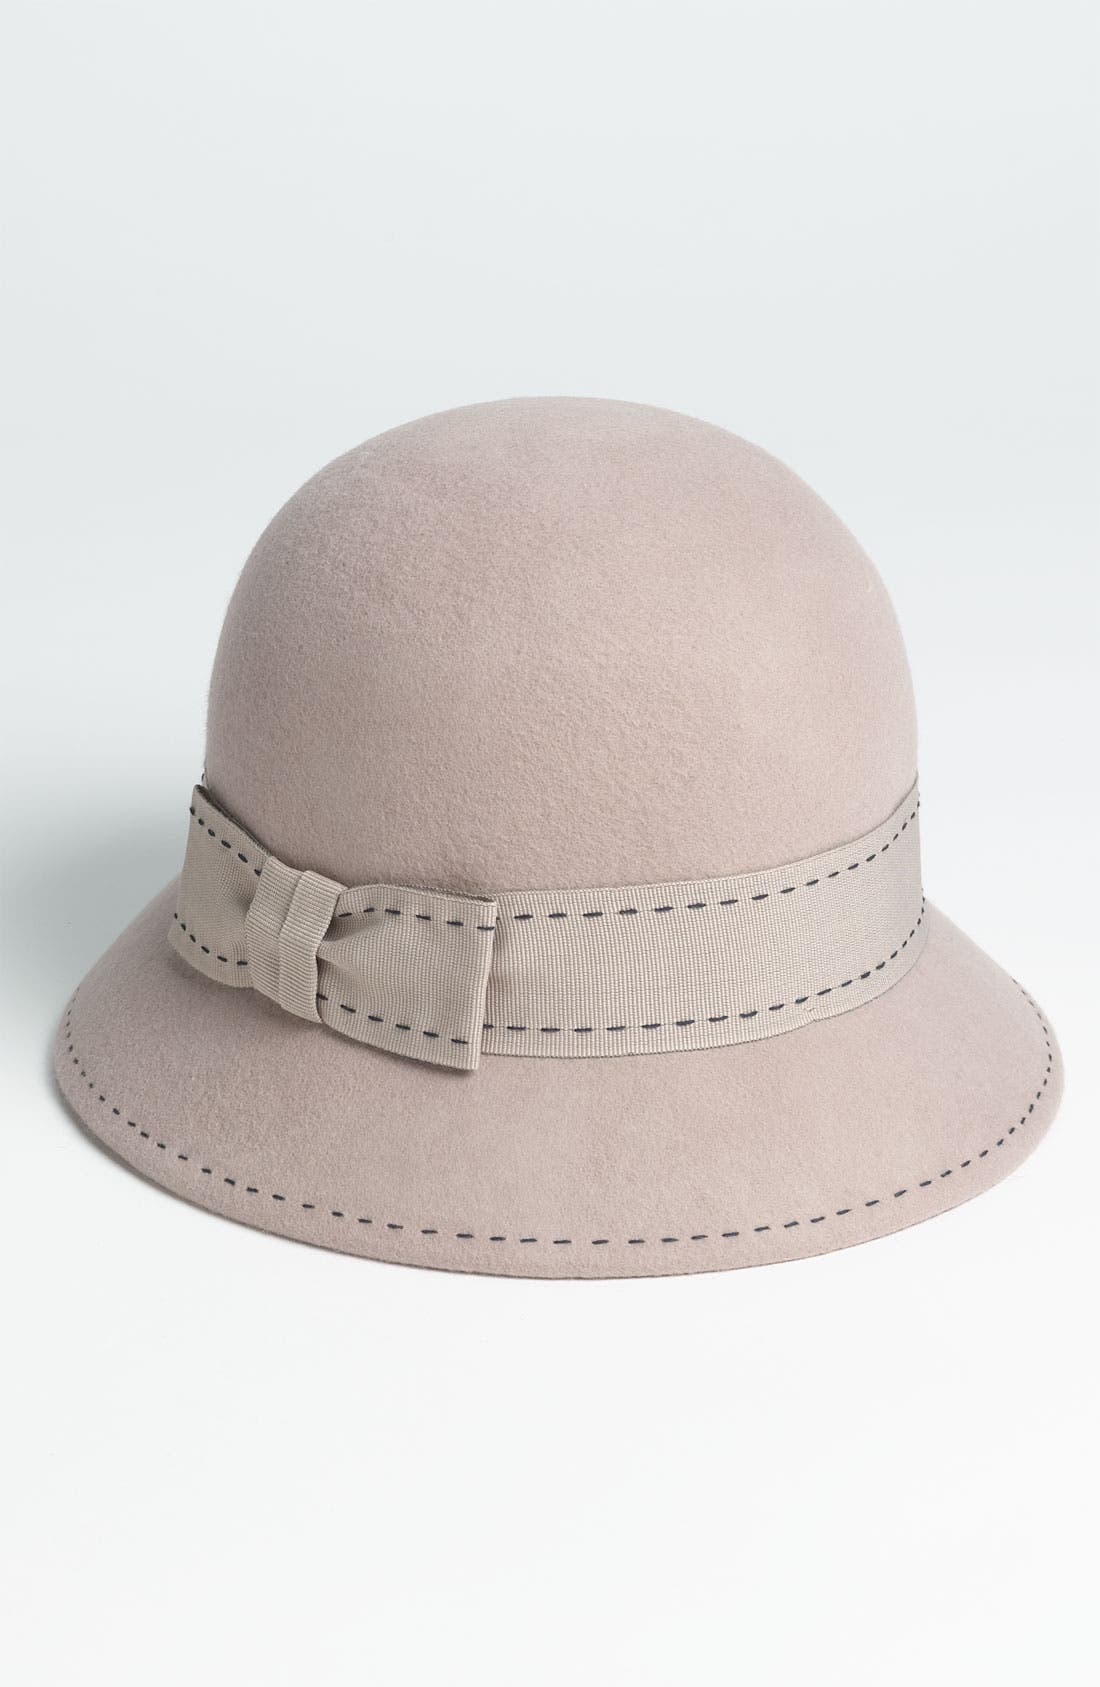 Alternate Image 1 Selected - Nordstrom Contrast Stitch Cloche